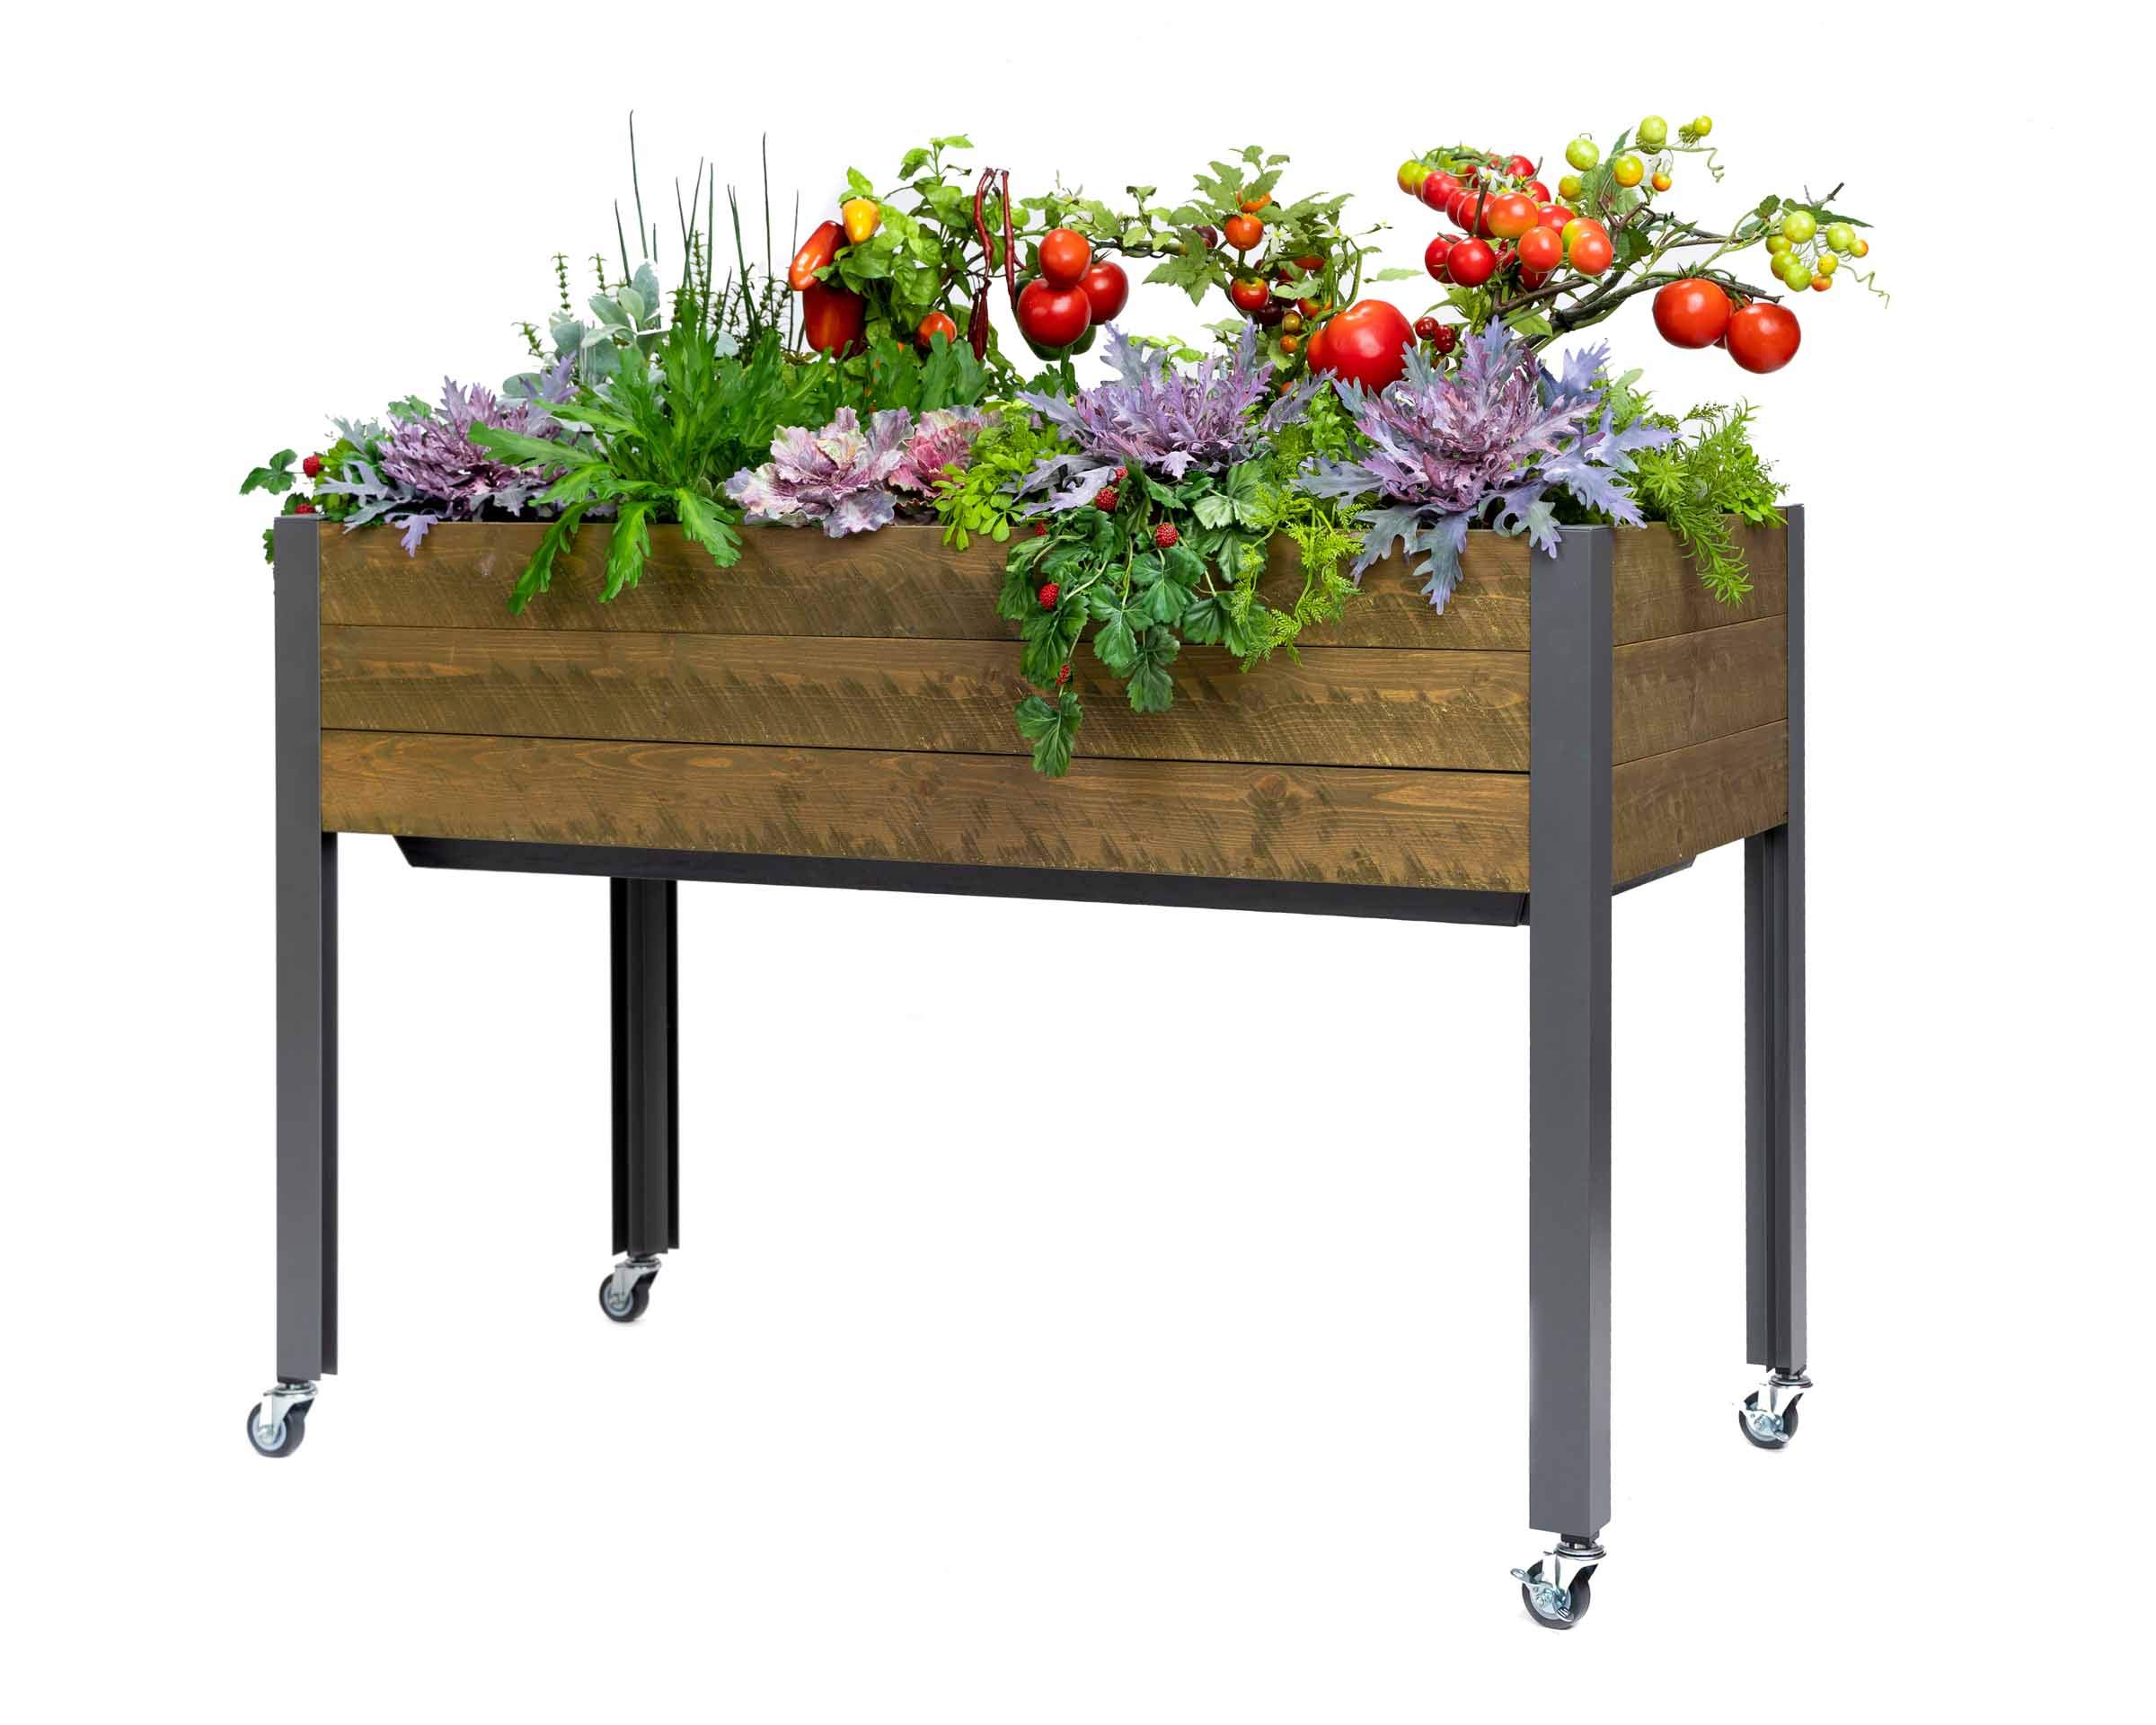 CedarCraft Self-Watering Elevated Spruce Planter (21'' x 47'' x 32''H) - The Flexibility of Container Gardening + The Convenience of a self-Watering System. Grow Healthier, More Productive Plants. by CedarCraft (Image #1)